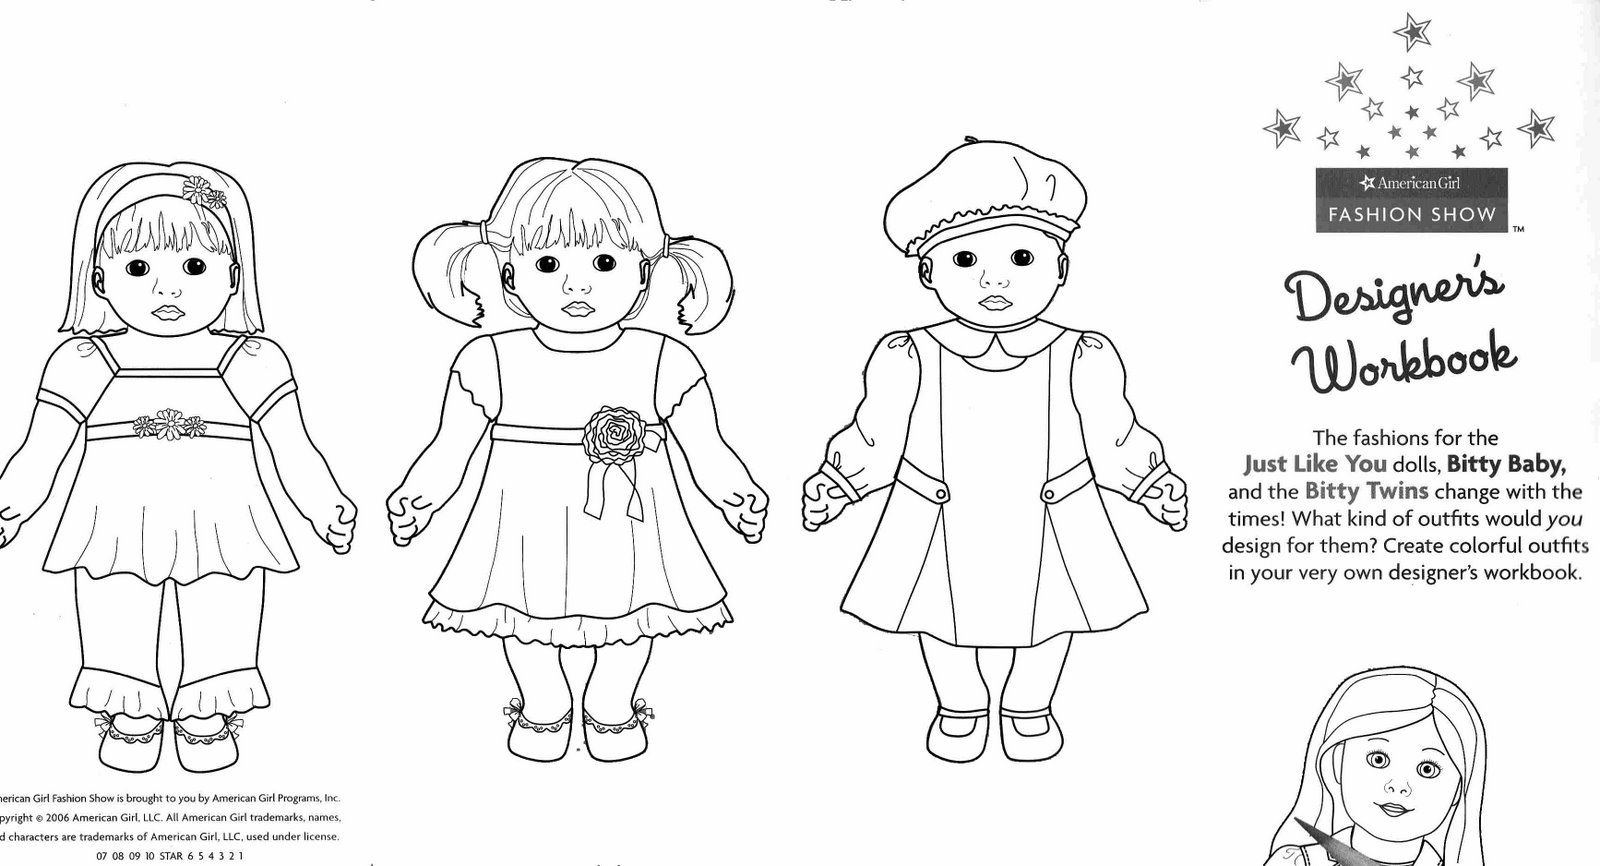 American Girl Doll Coloring Pages (14 Pictures) - Colorine.net | 24894